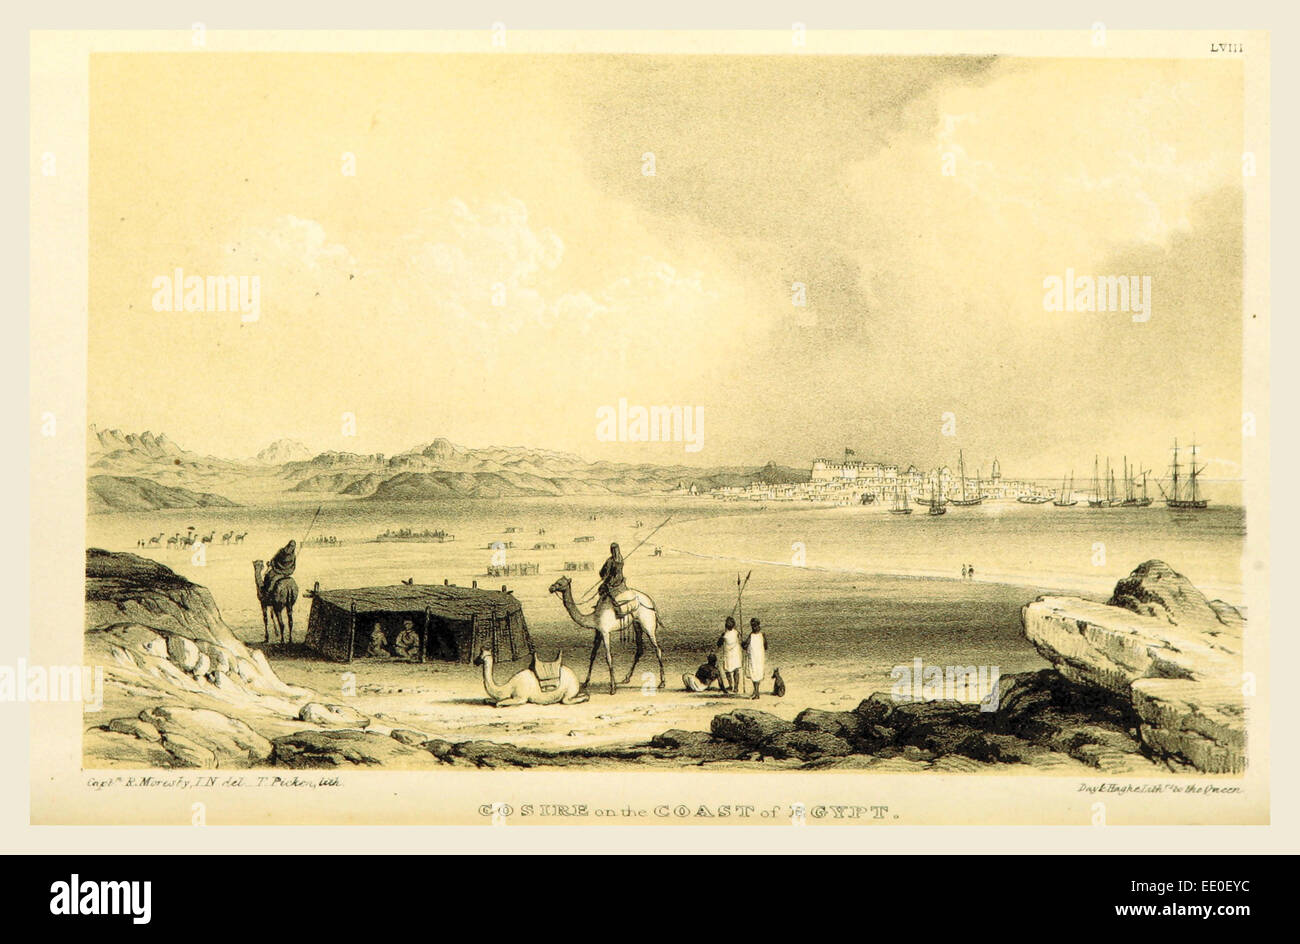 Cosire Egypt, during the years 1835, 1836, and 1837, 19th century engraving - Stock Image